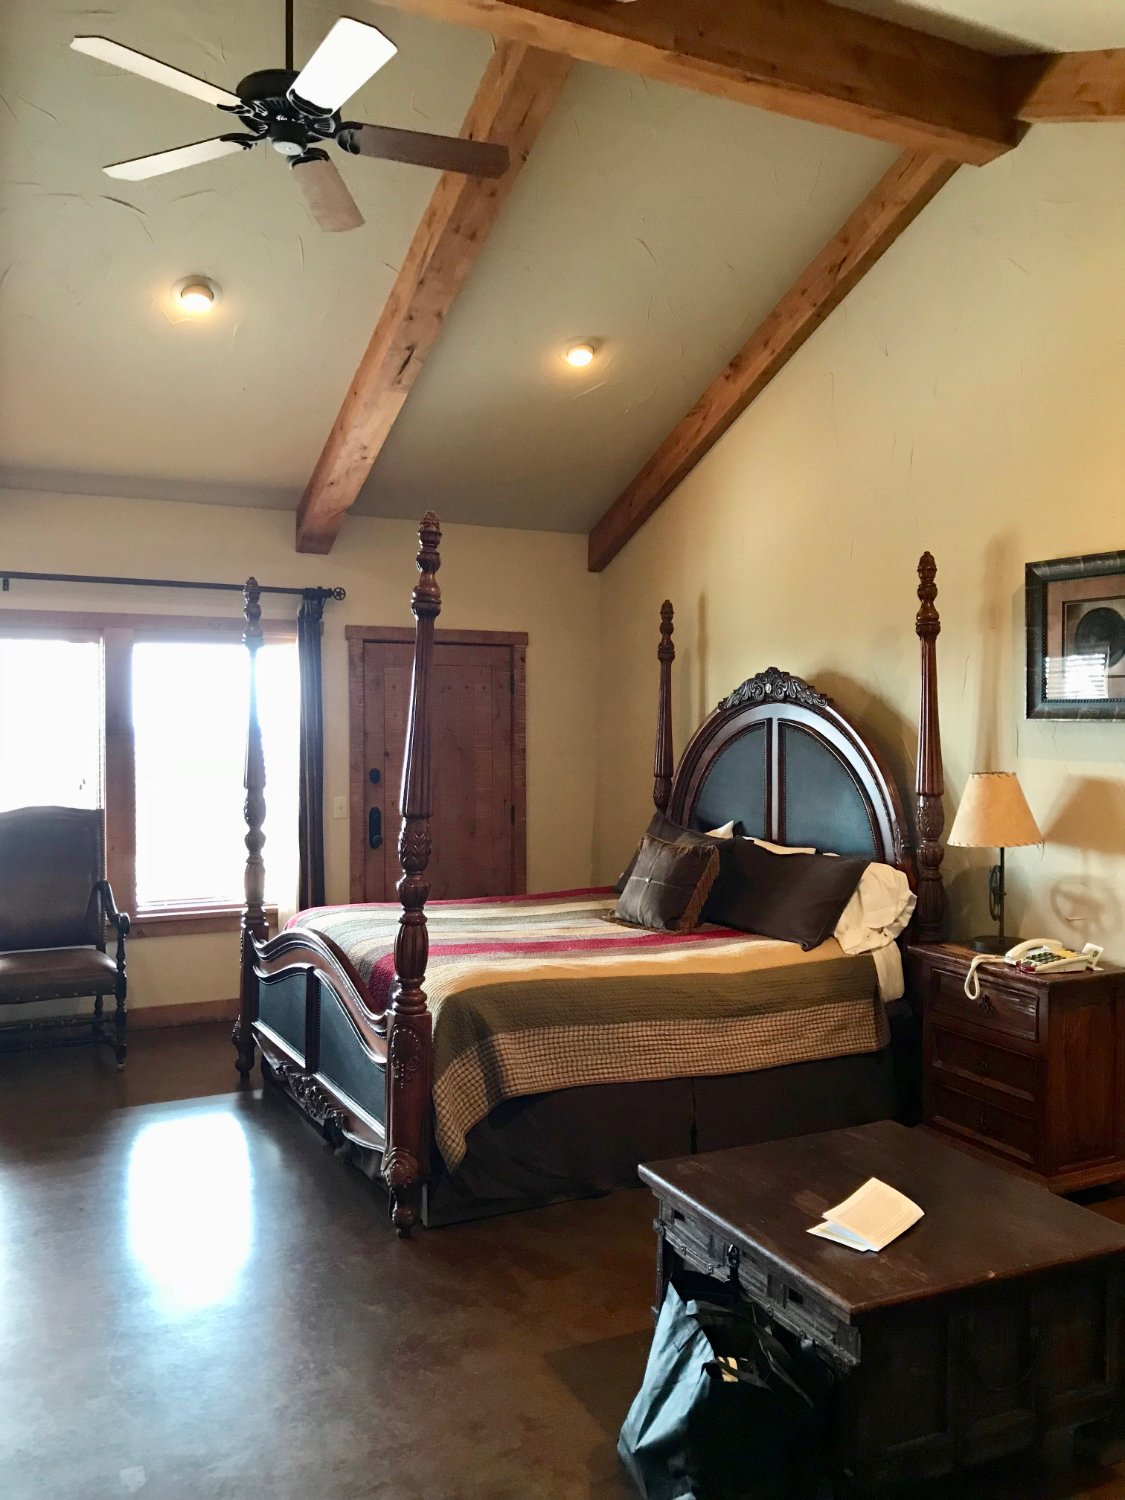 Wildcatter ranch resort spa graham tx 2018 review for 16 image the family salon